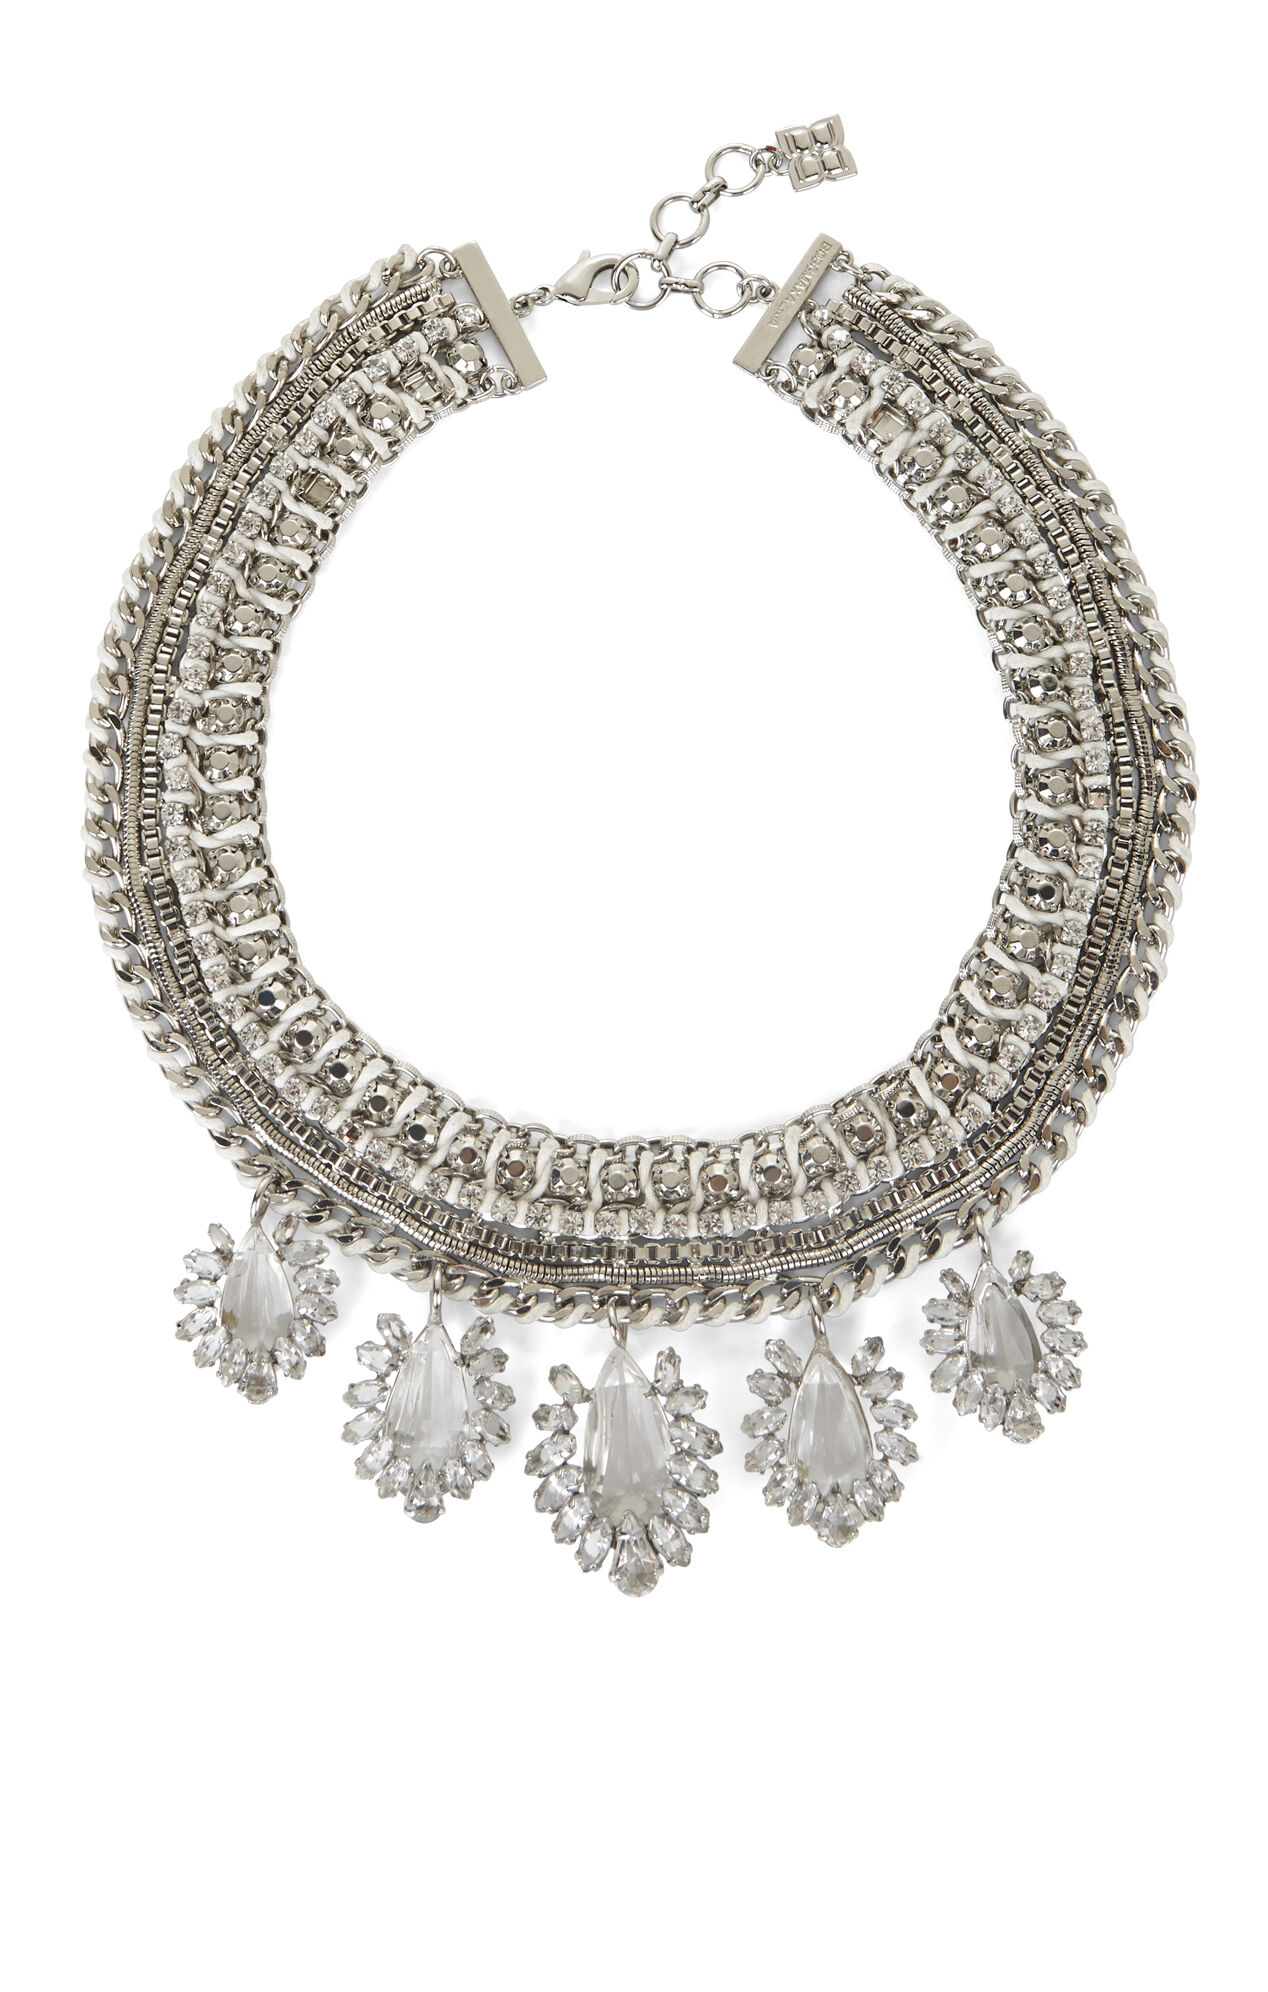 Woven-Chain Statement Necklace